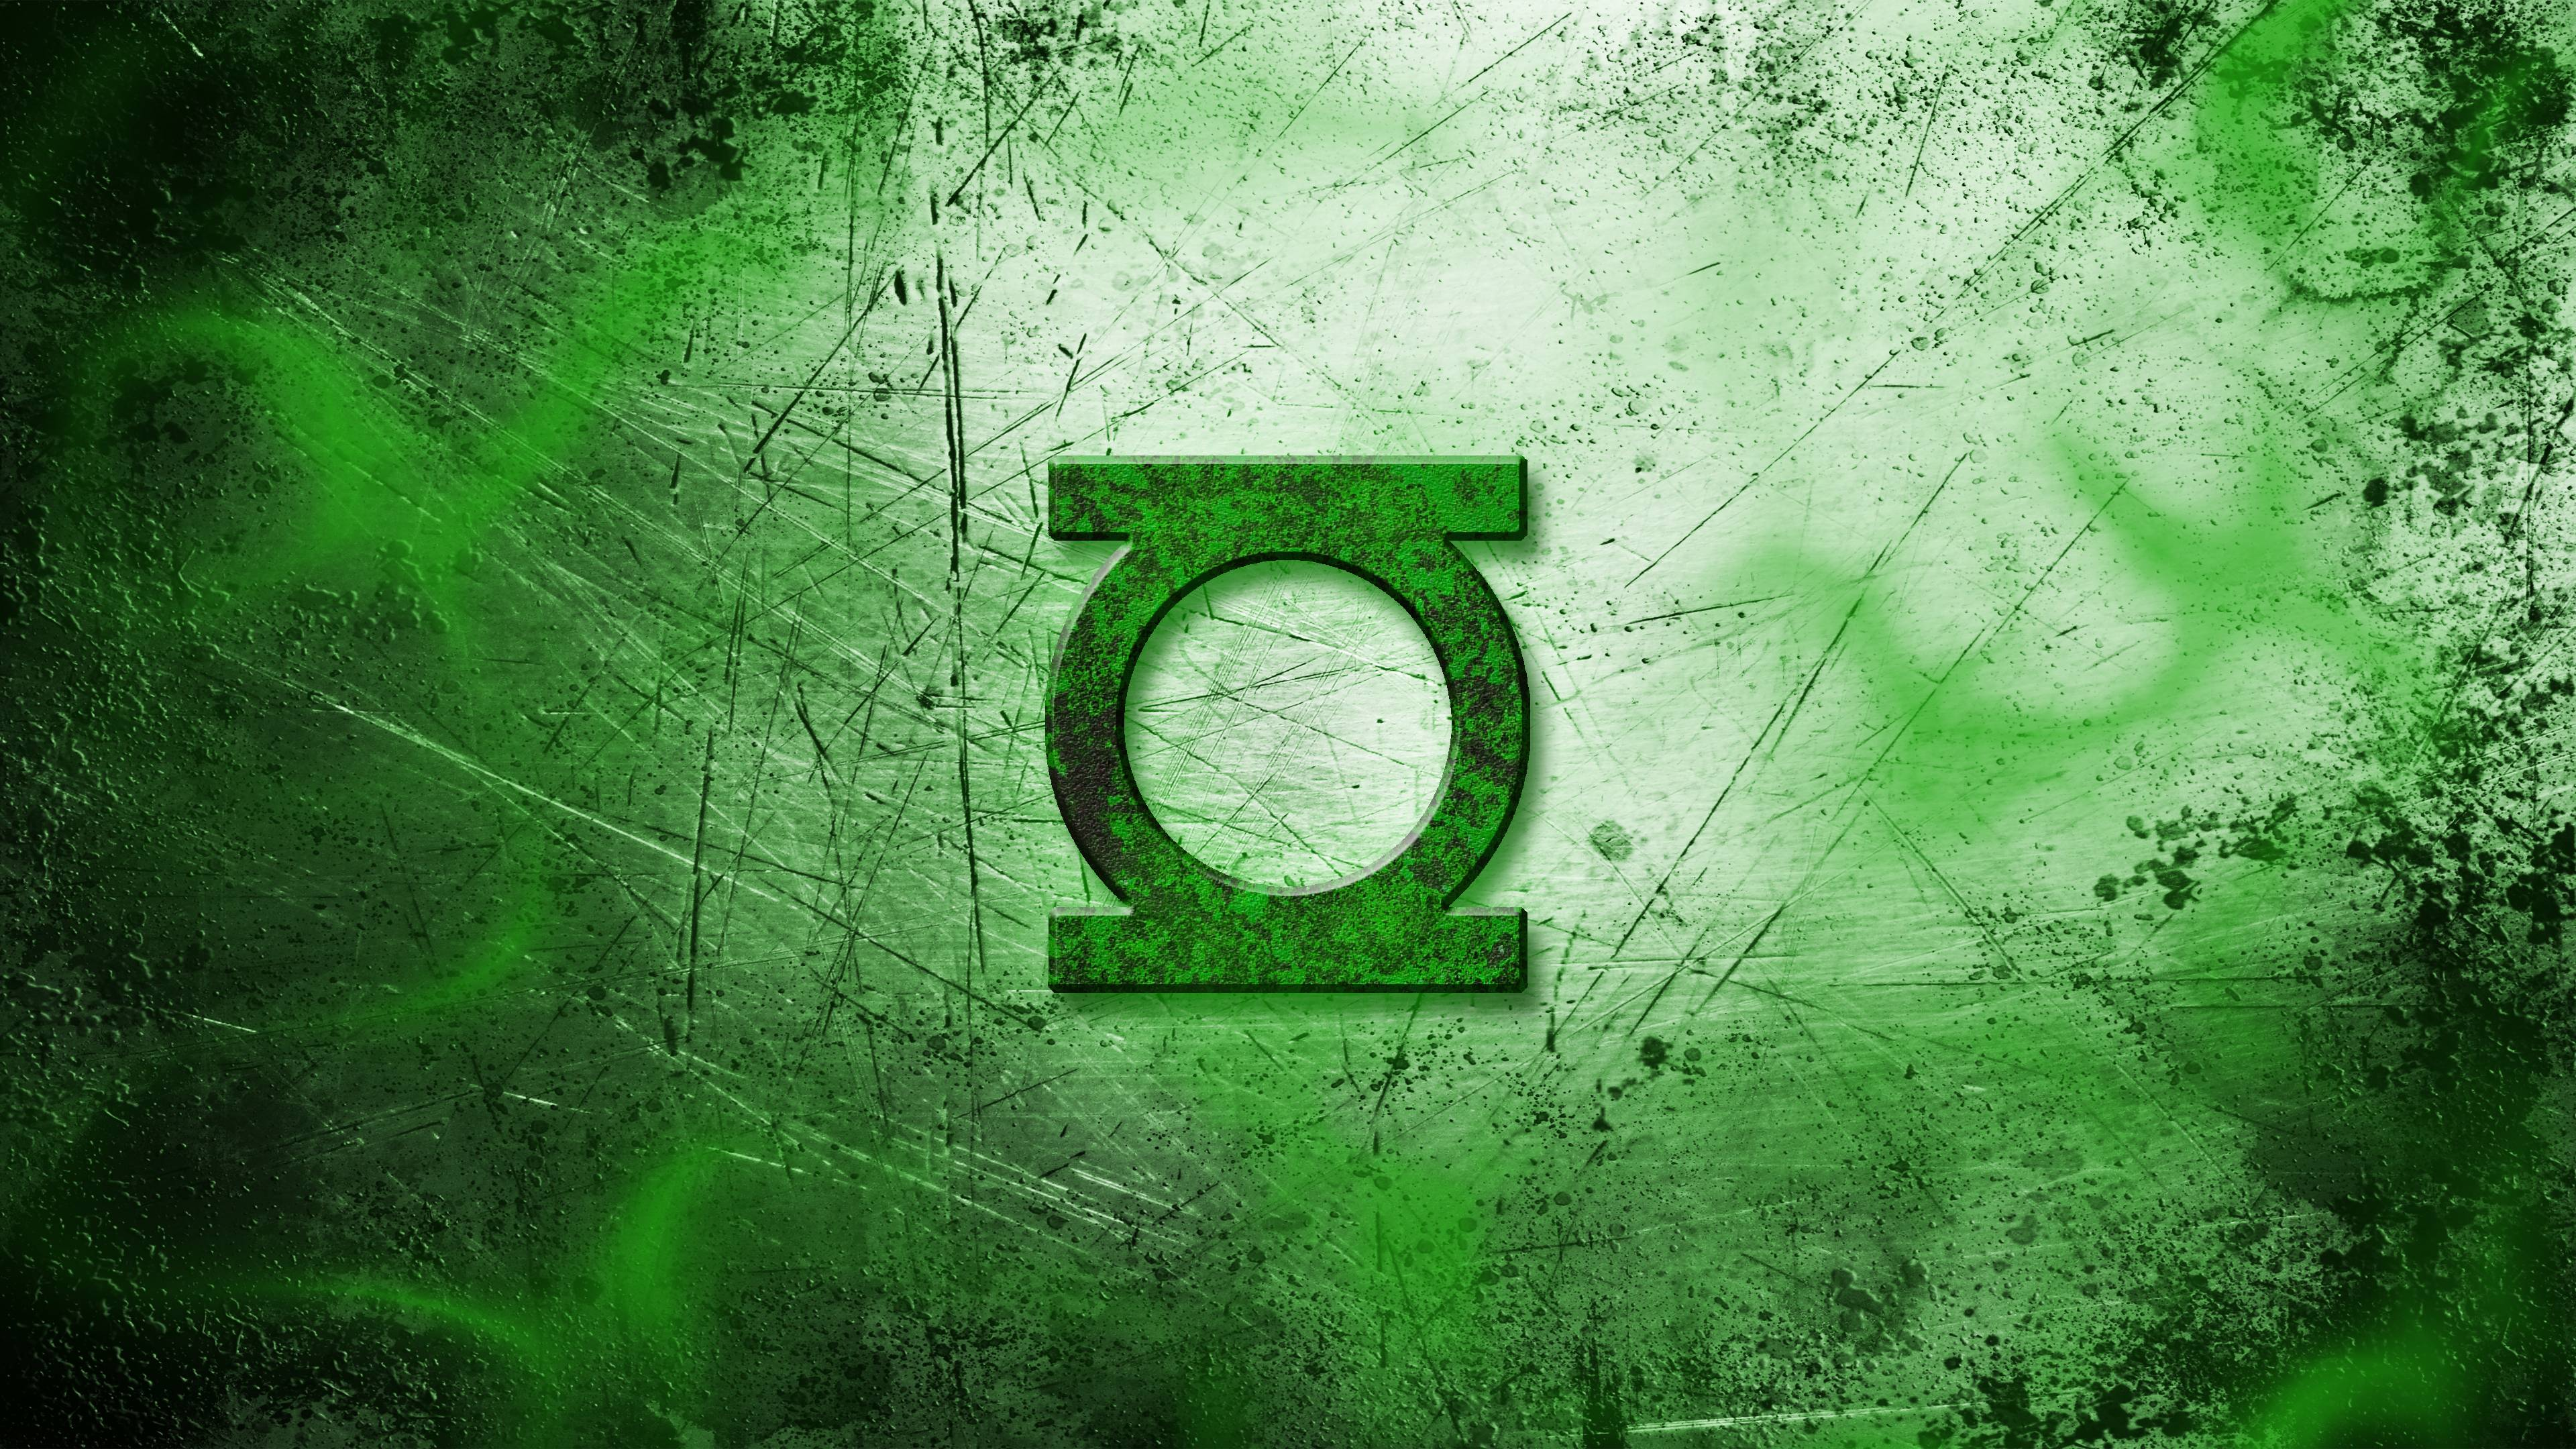 269 green lantern hd wallpapers | background images - wallpaper abyss